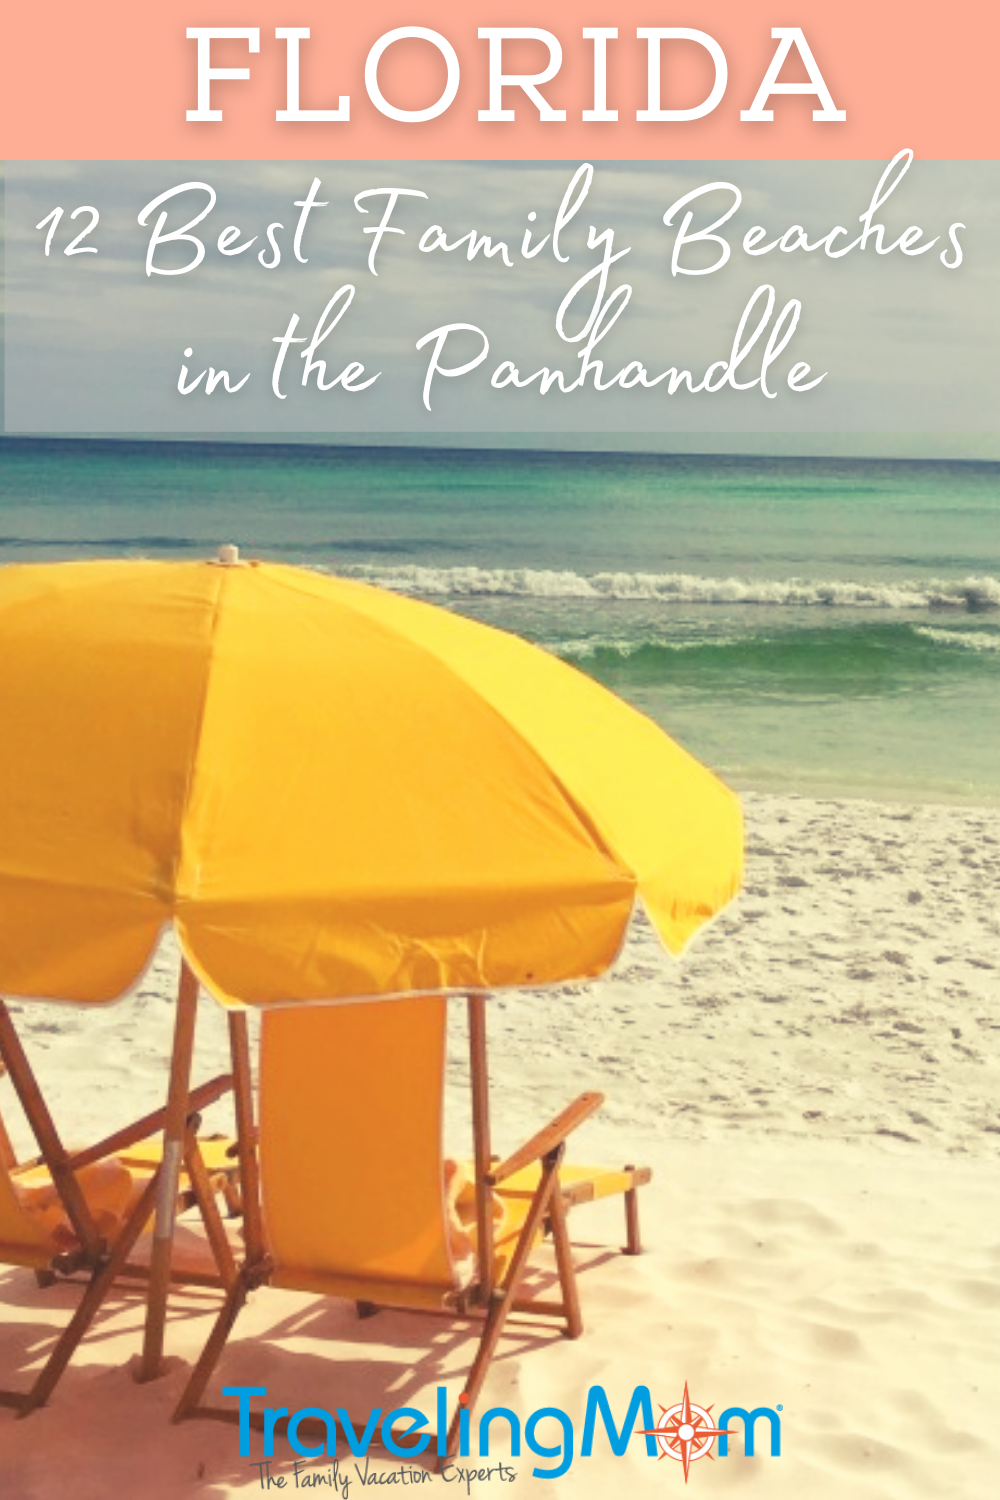 yellow umbrella and beach chairs near water with best beaches in the panhandle text